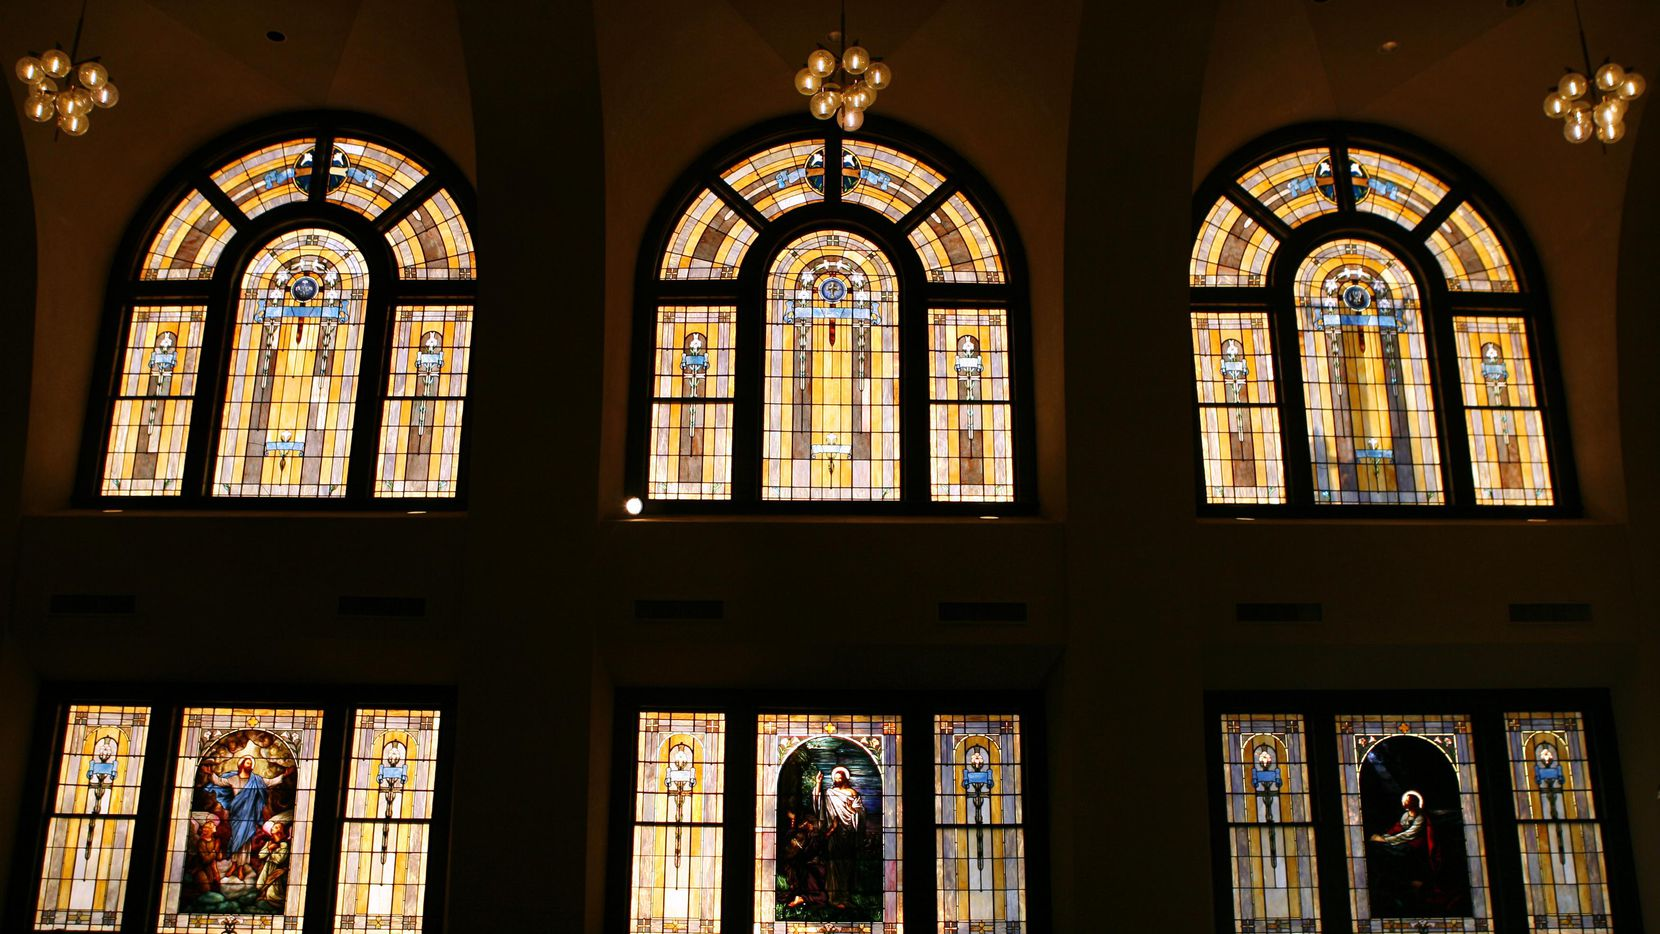 Stained glass windows in the sanctuary of the Tyler Street United Methodist Church in Dallas.